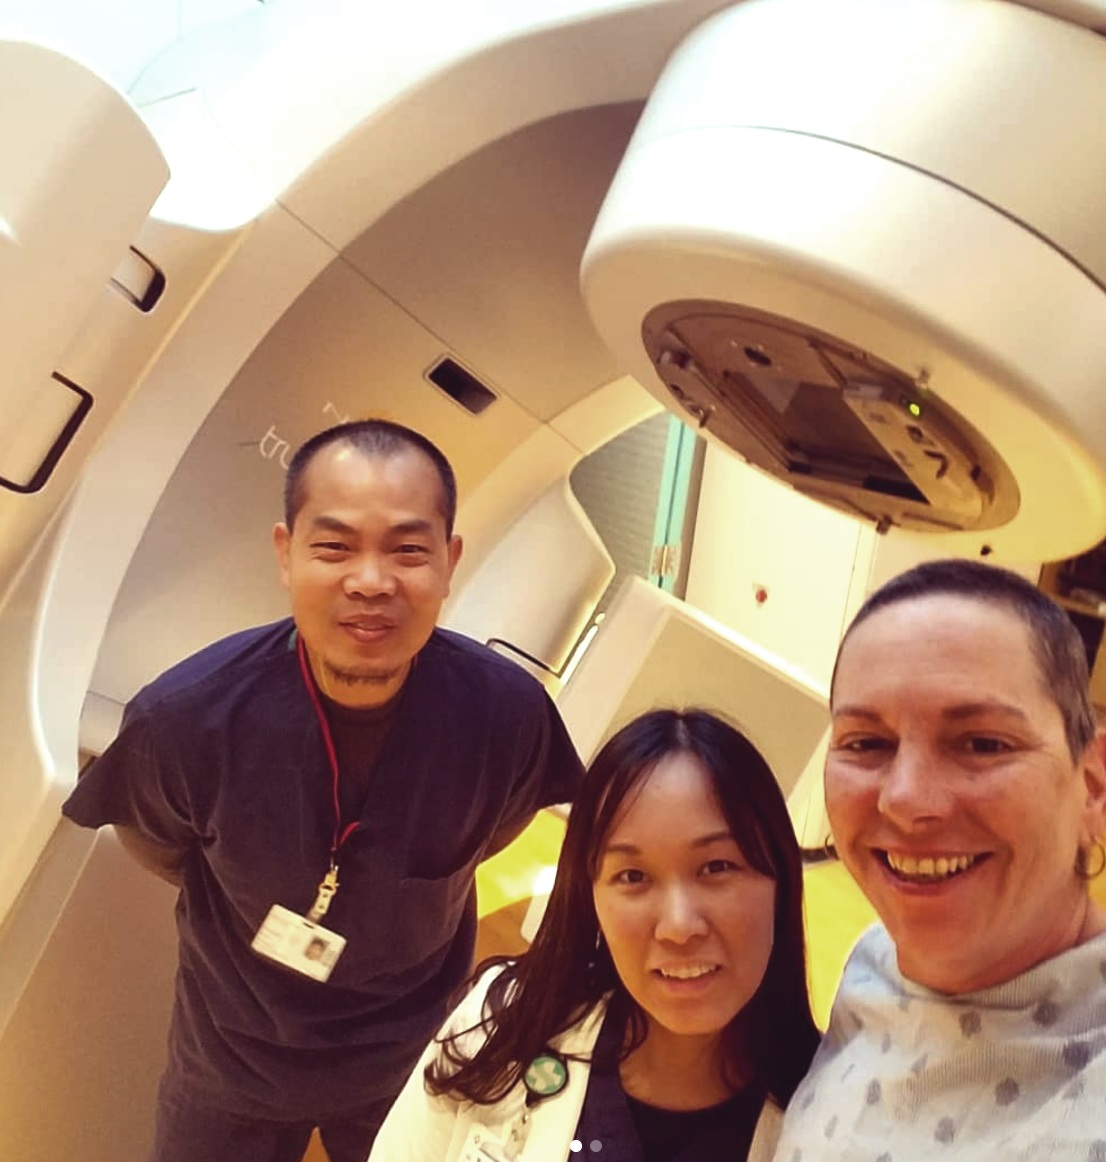 Doreen with her radiation team.